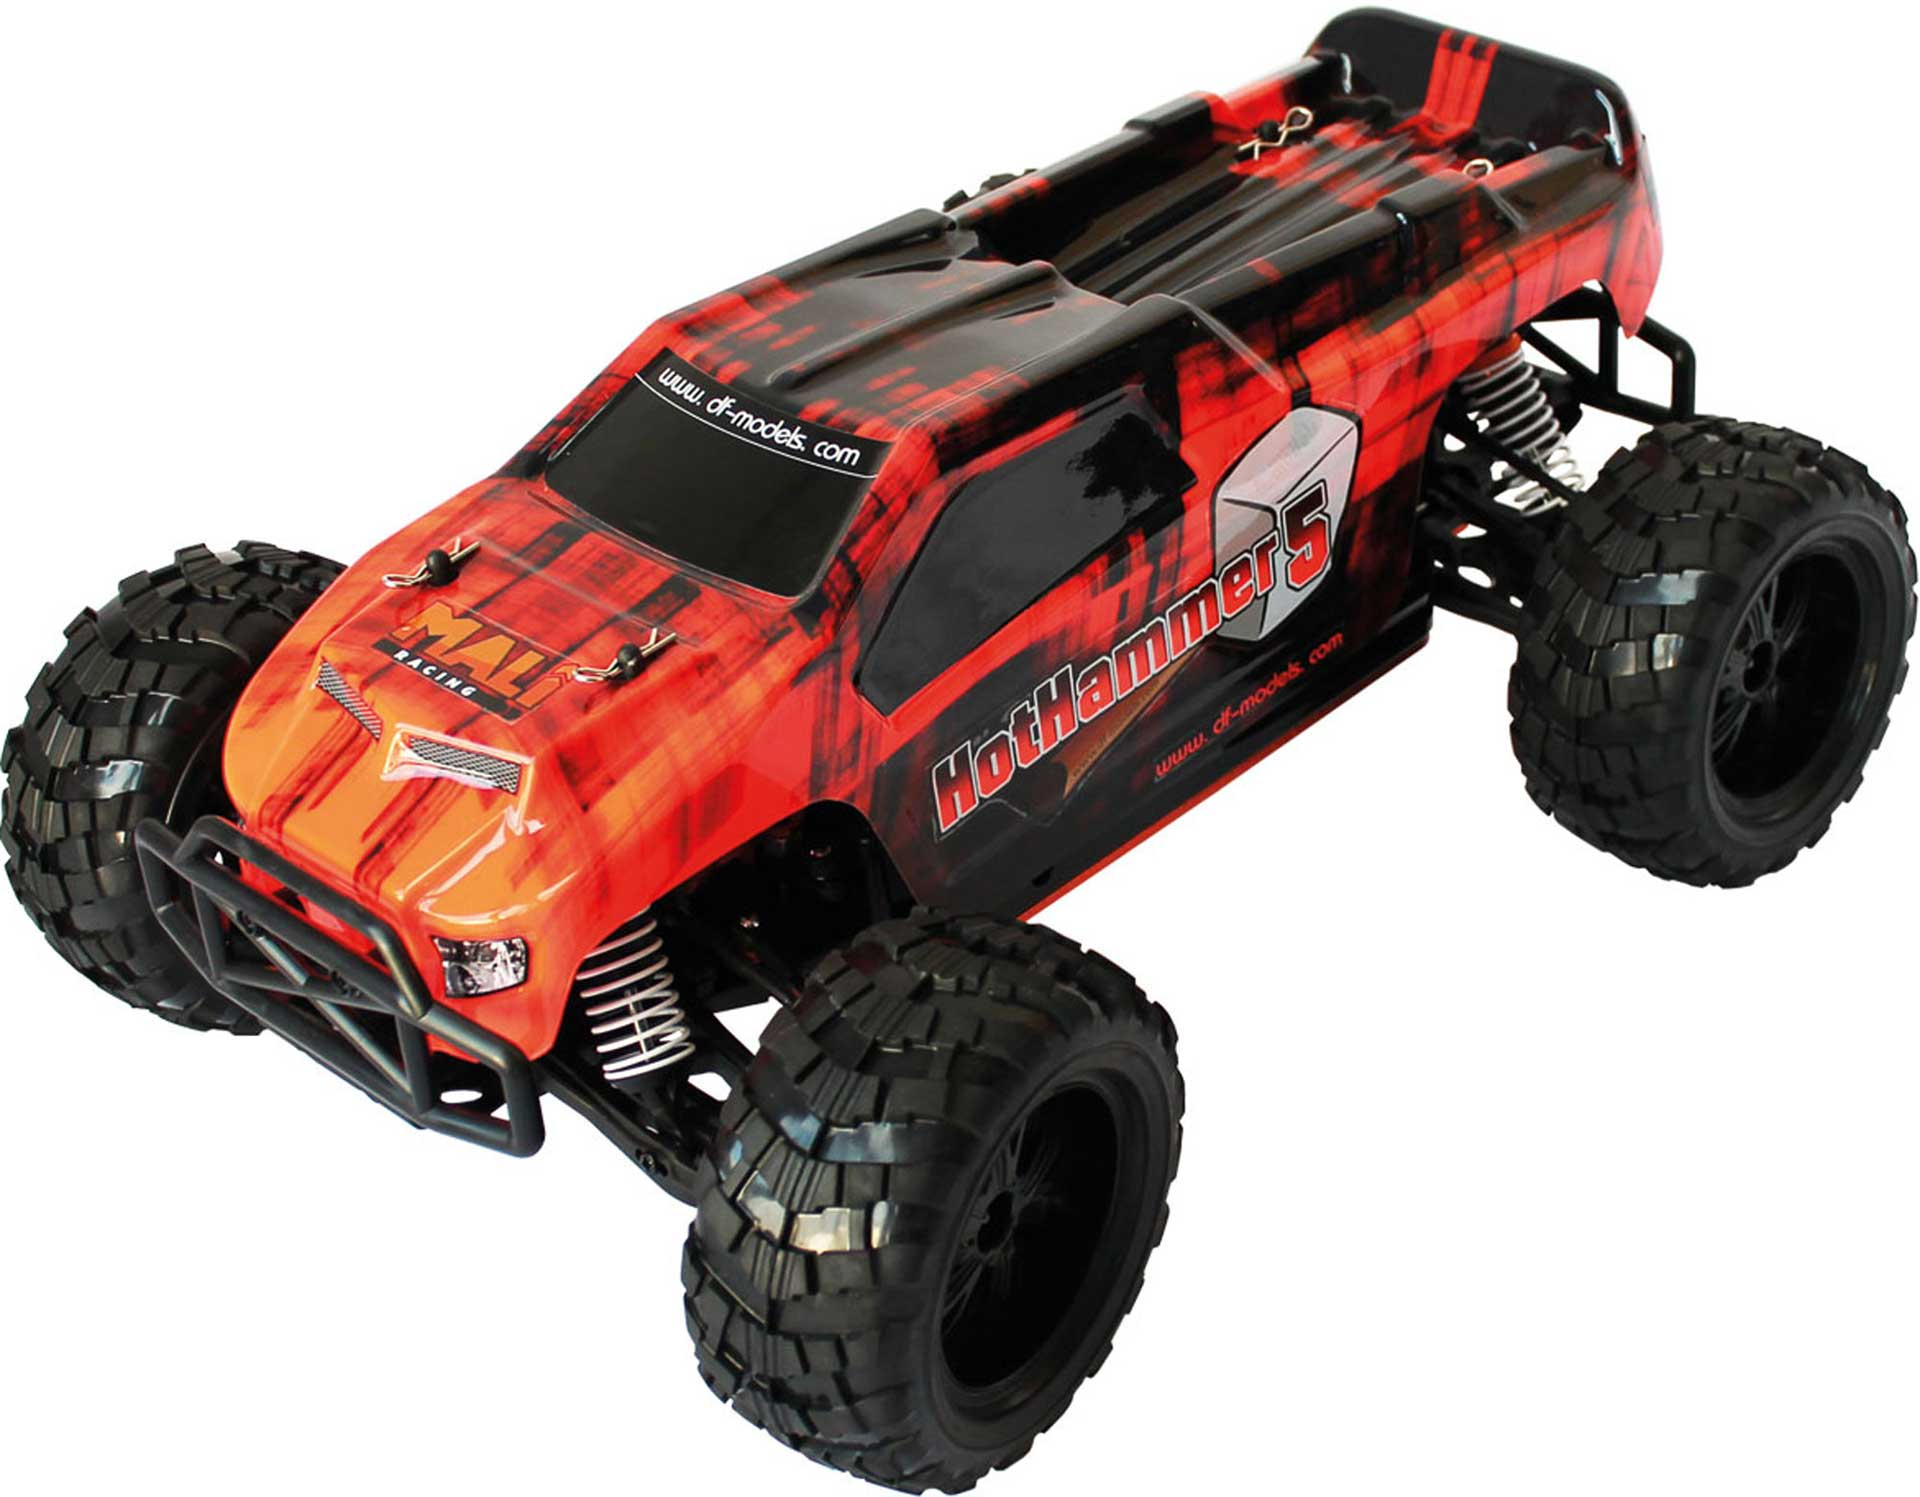 DRIVE & FLY MODELS HOTHAMMER 5 TRUCK BRUSHLESS 1/10XL RTR 4WD